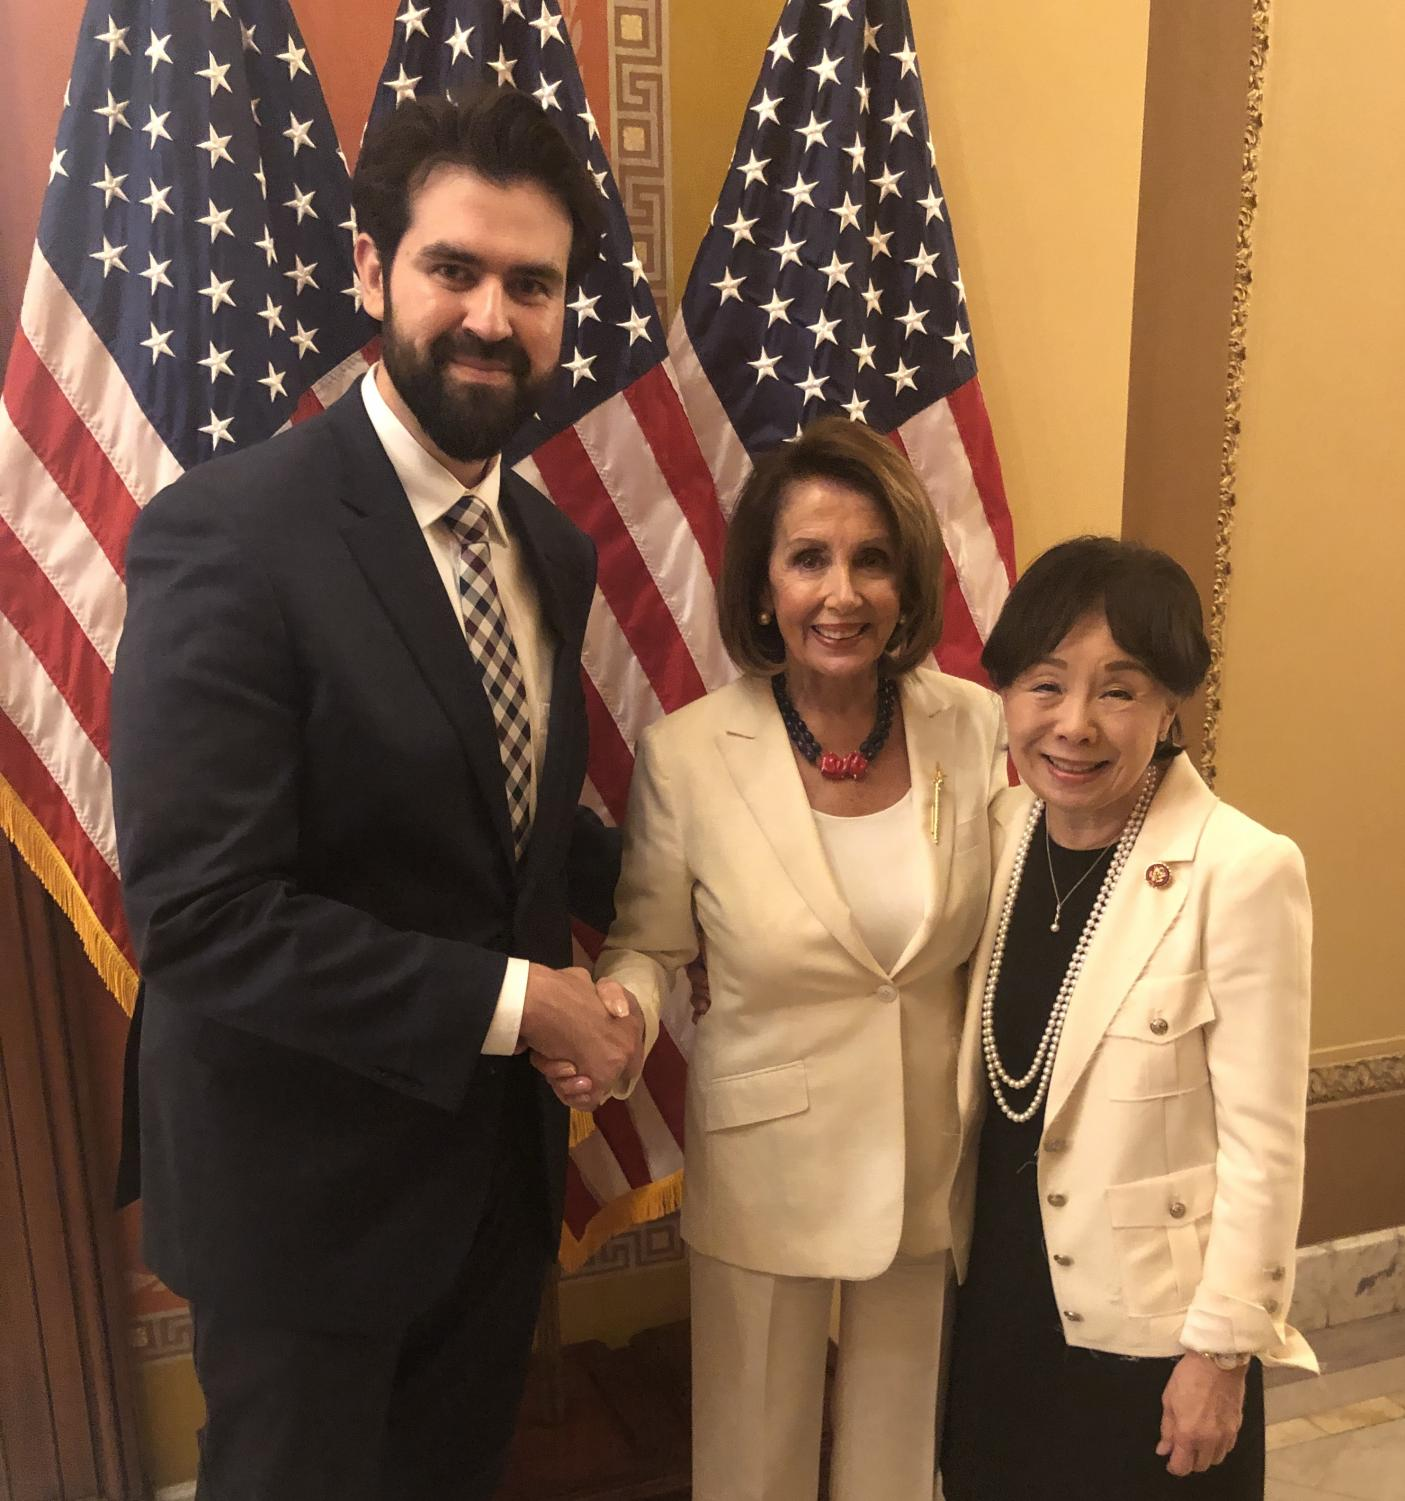 From left: Sac State Professor Jesus Limón, Speaker of the House of Representatives Nancy Pelosi, and Doris Matsui, U.S. Representative for California's 6th district all outside the hall before the The State of the Union Address. Limón was invited by Matsui as her personal guest for the event.